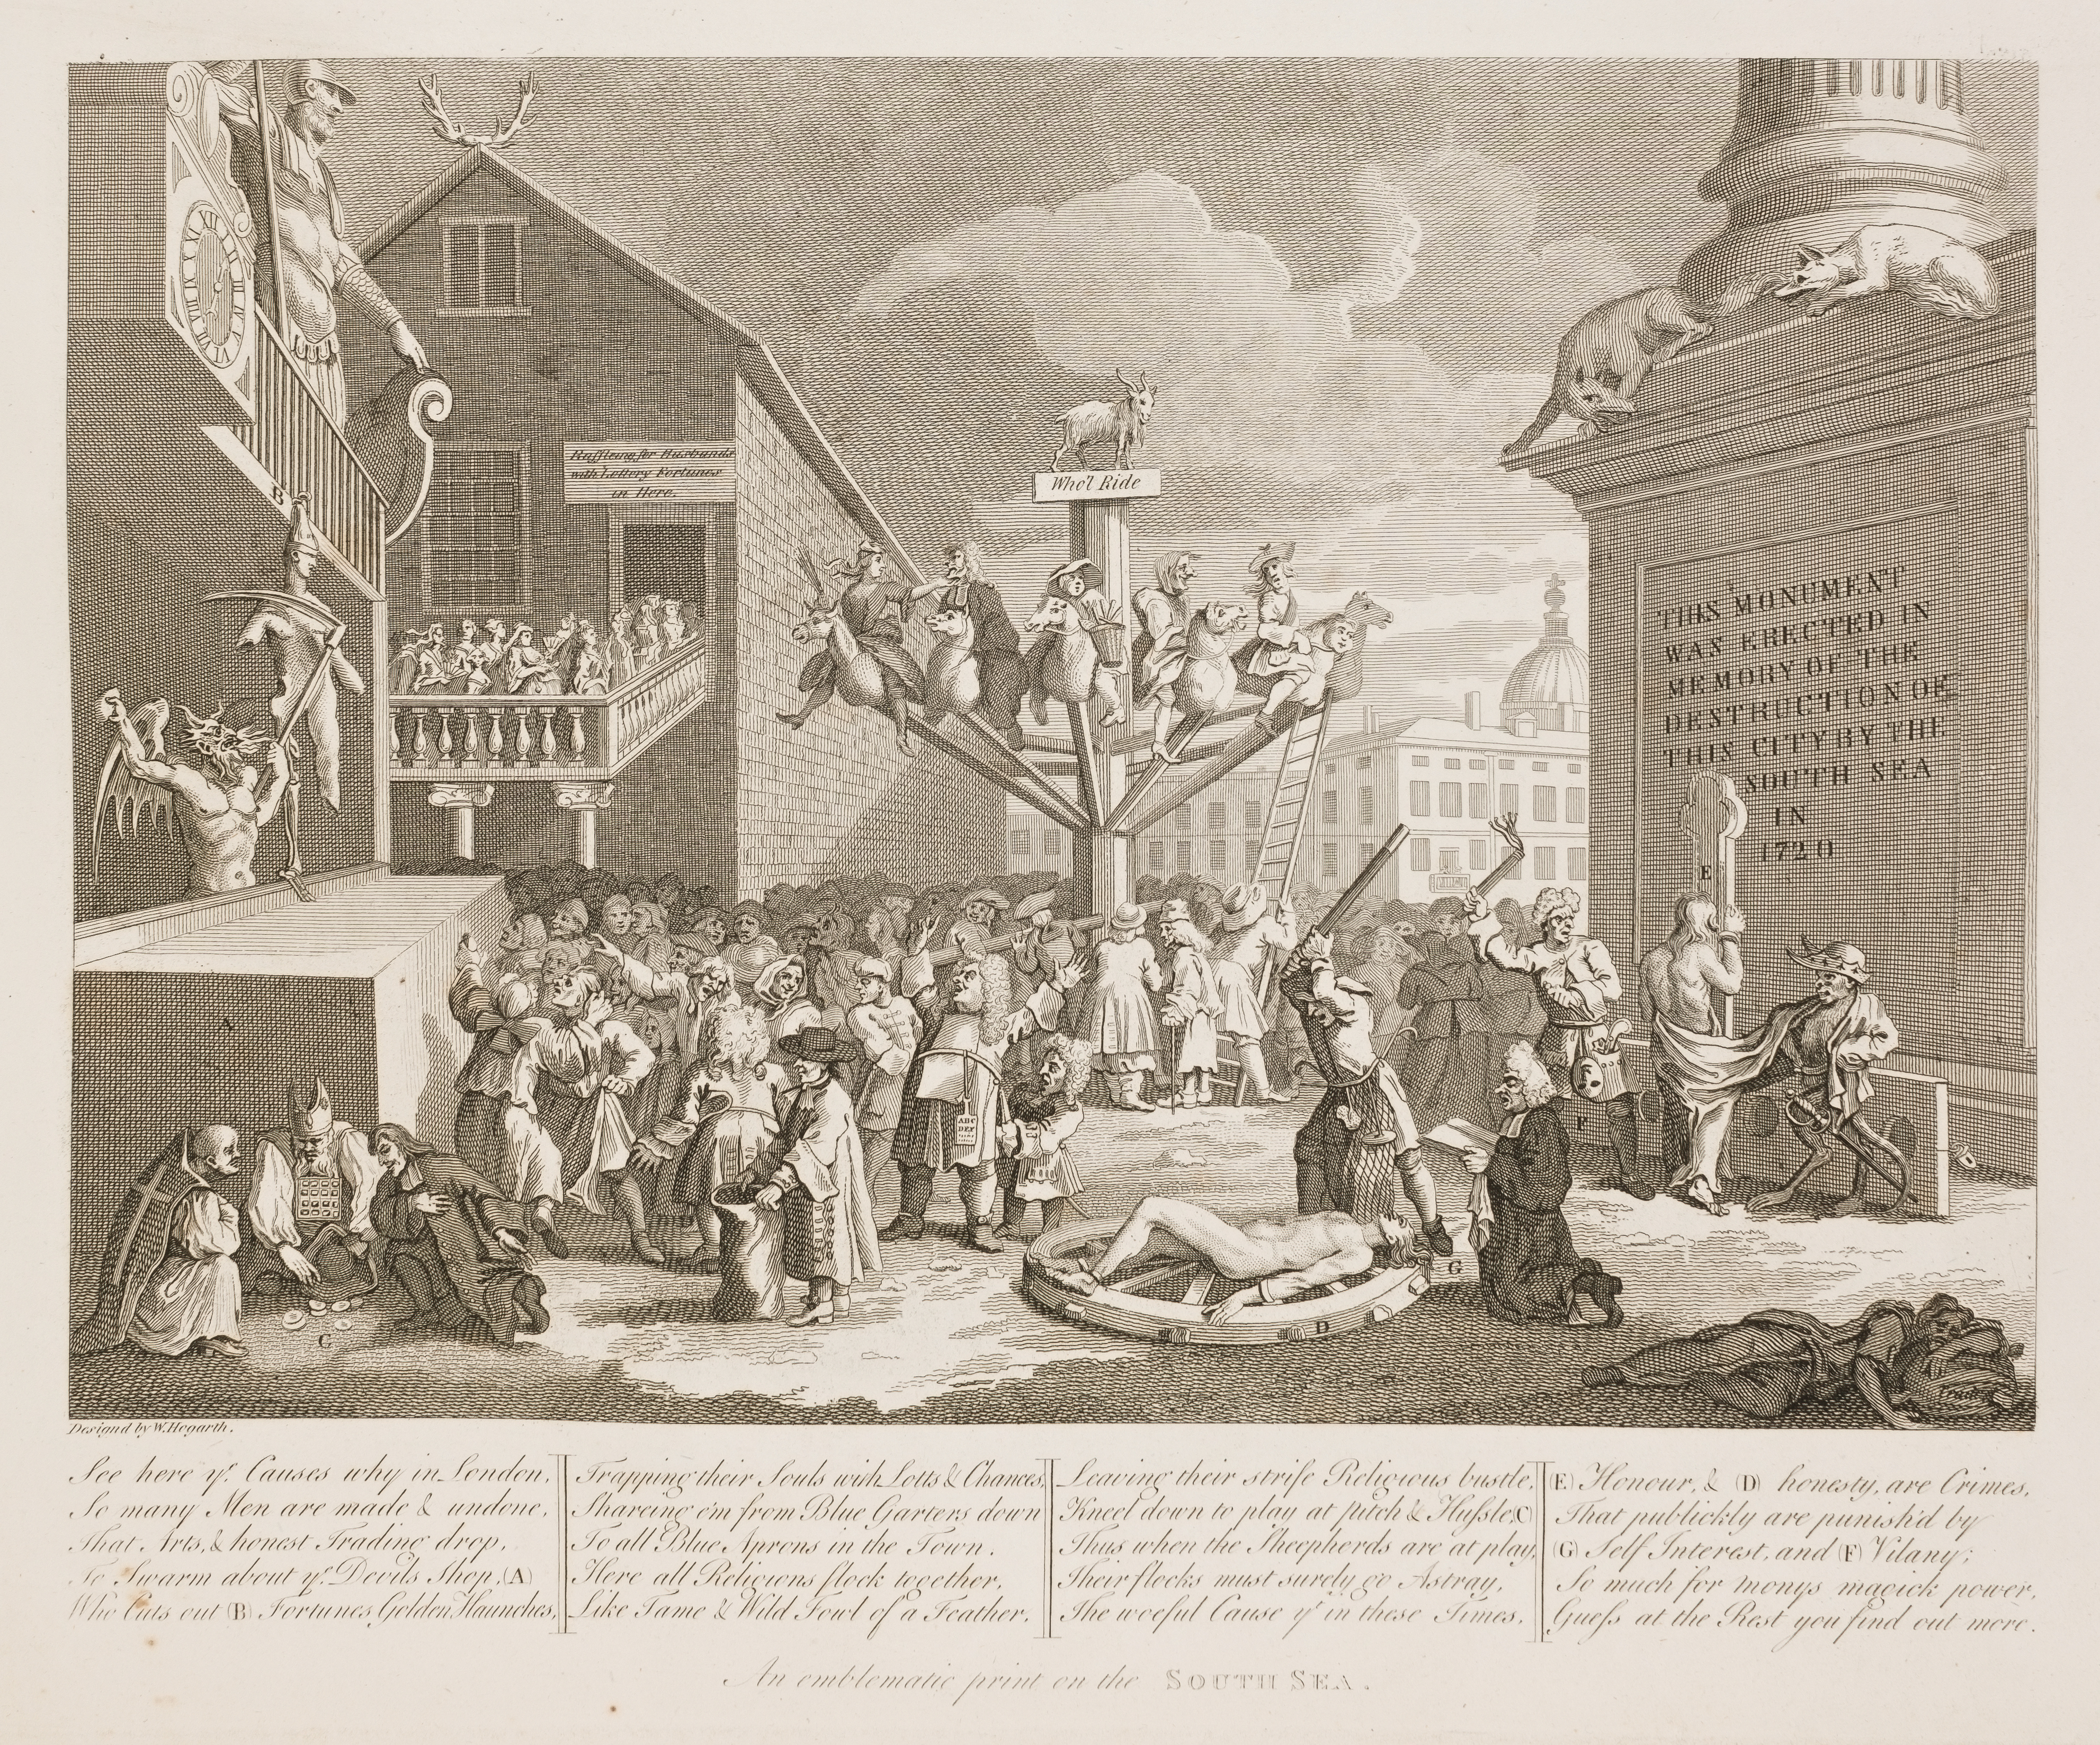 An emblematic print of the South Sea